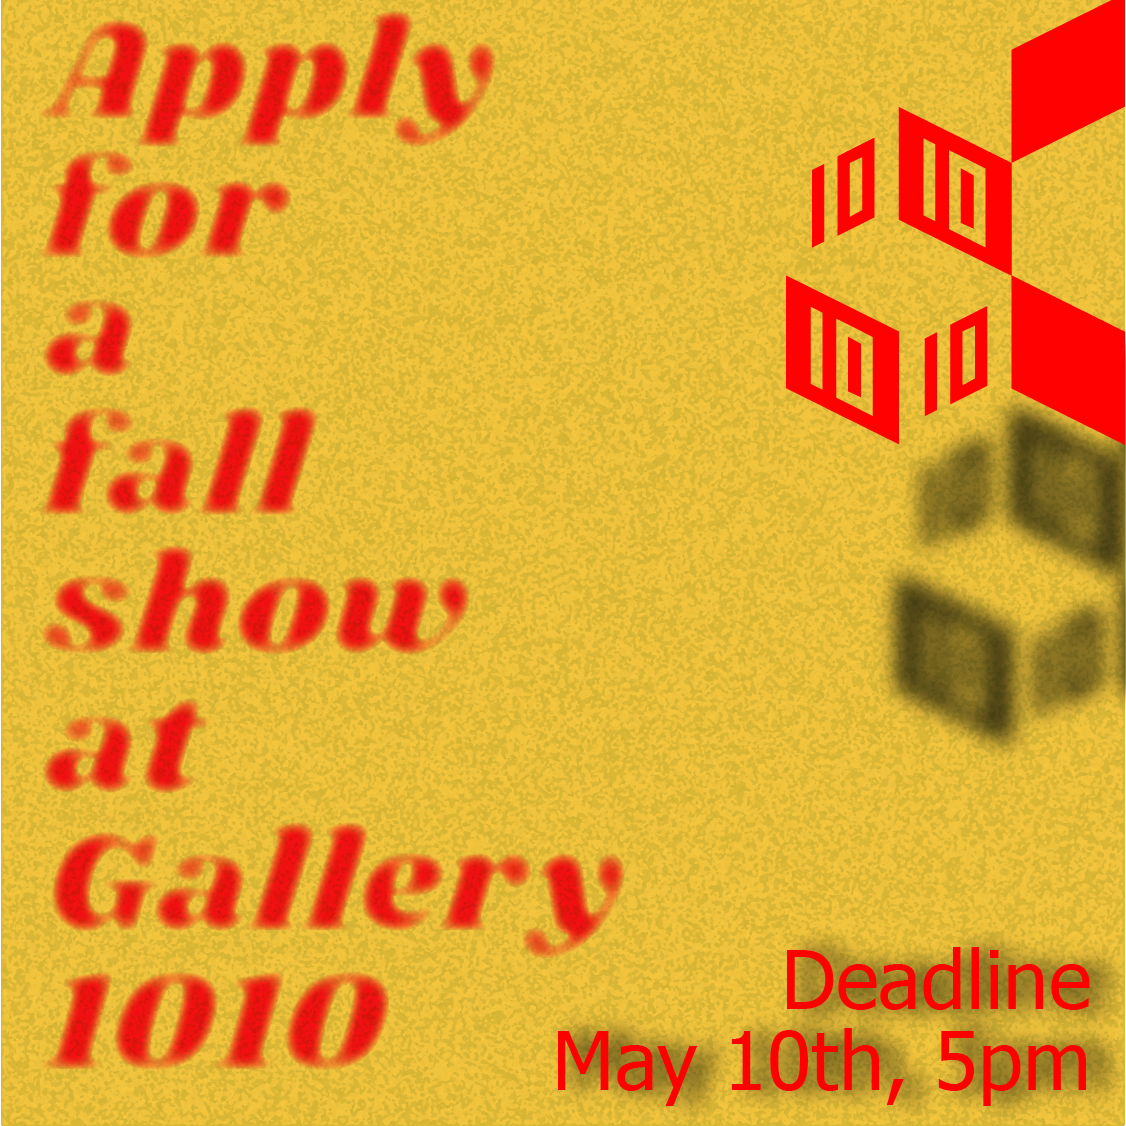 Apply for a fall show at Gallery 1010, Deadline May 10th, 5pm.